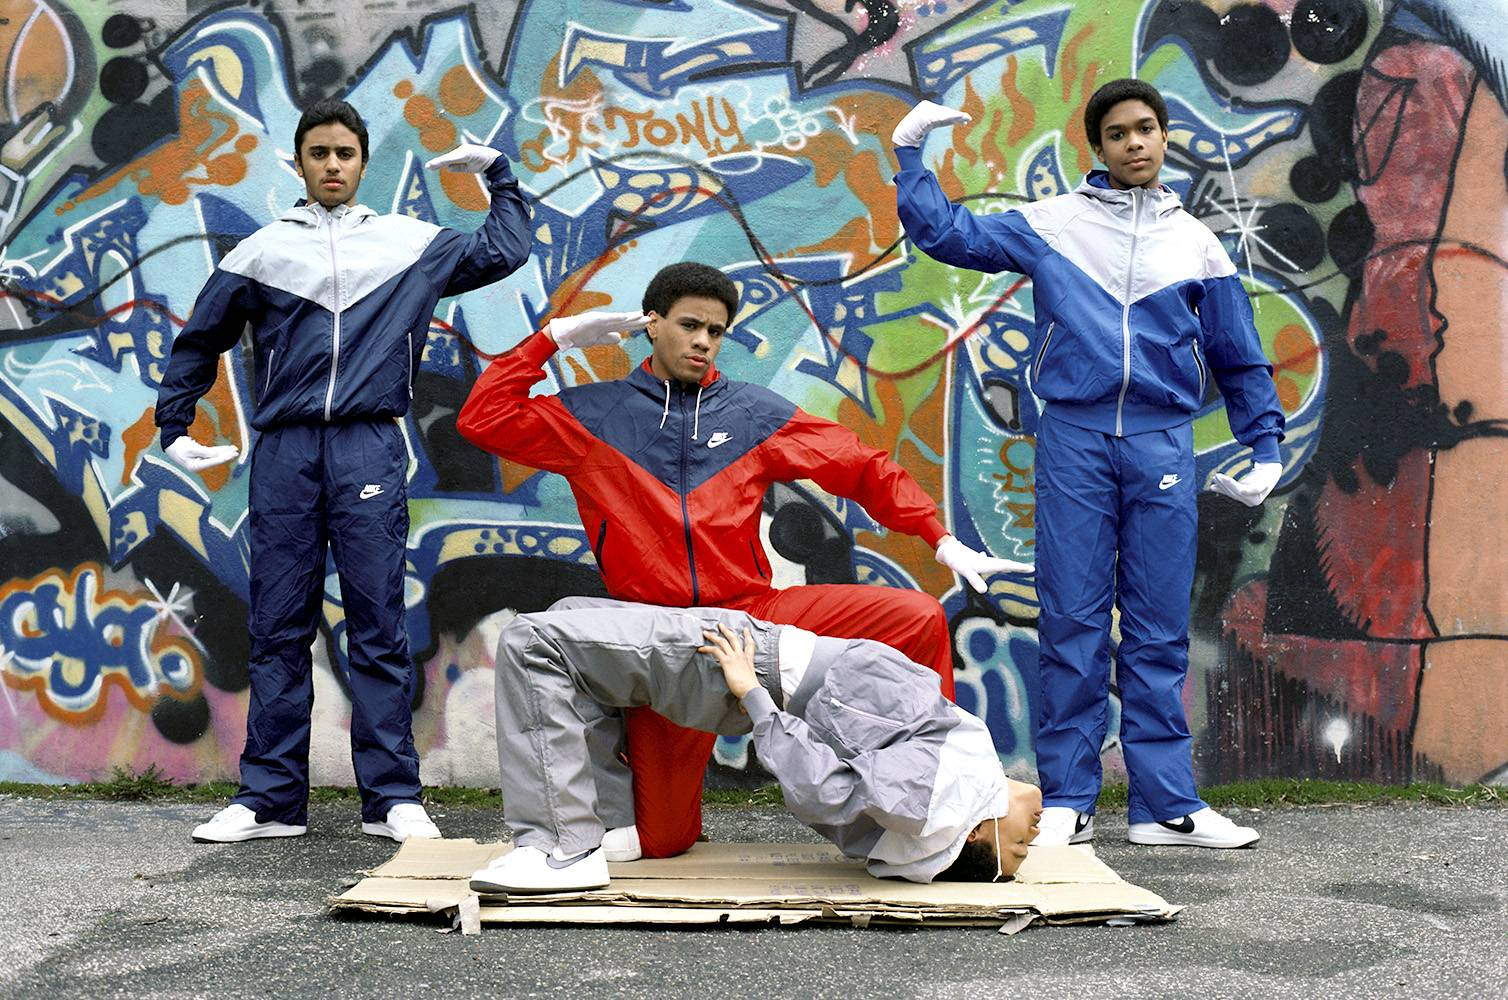 """Break-dancing - B-boy pioneers such as Bronx native Richard """"Crazy Legs"""" Colon and Ken Smith, former vice president of the Rock Steady Crew, helped to make break-dancing so popular it was incorporated as one of the five elements of hip hop. The movement inspired tracks like Kurtis Blow's""""The Breaks,""""Herbie Hancock's""""Rockit"""" and KRS-One's""""Step Into a World (Rapture Delight).""""(Photo: Michael Ochs Archives/Getty Images)"""